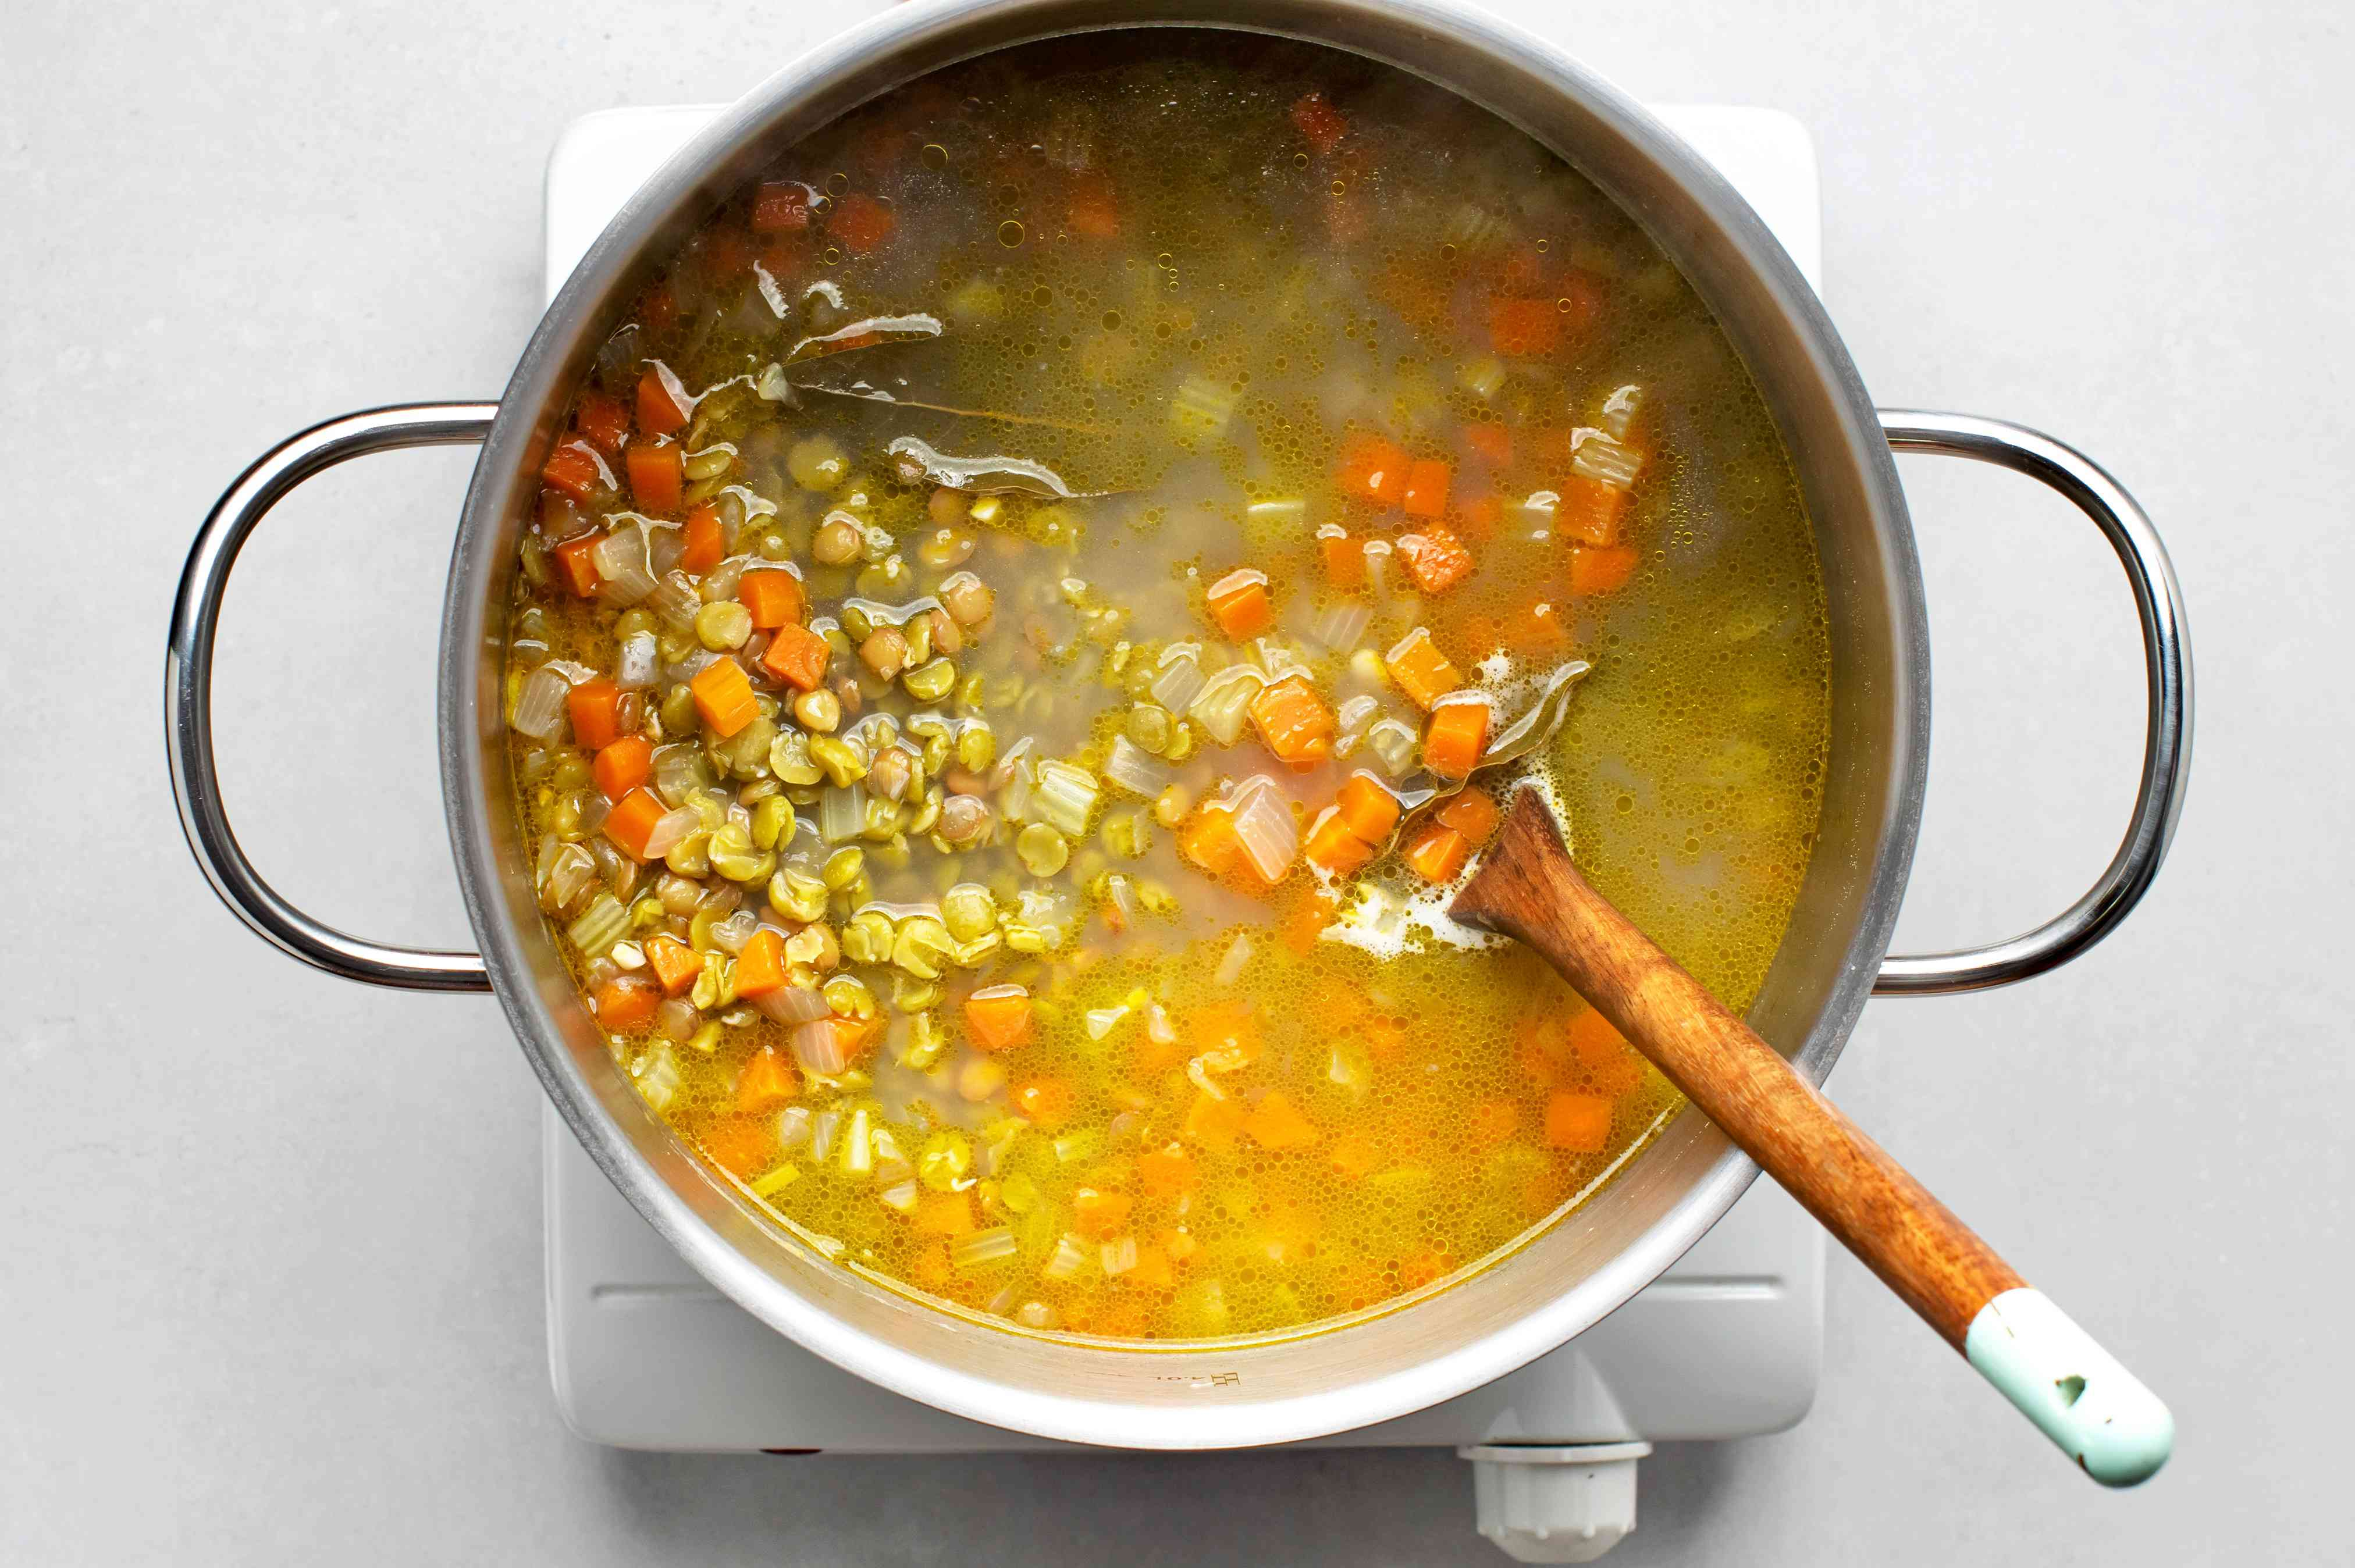 Add the split peas, lentils, and water to the vegetable mixture in the pot